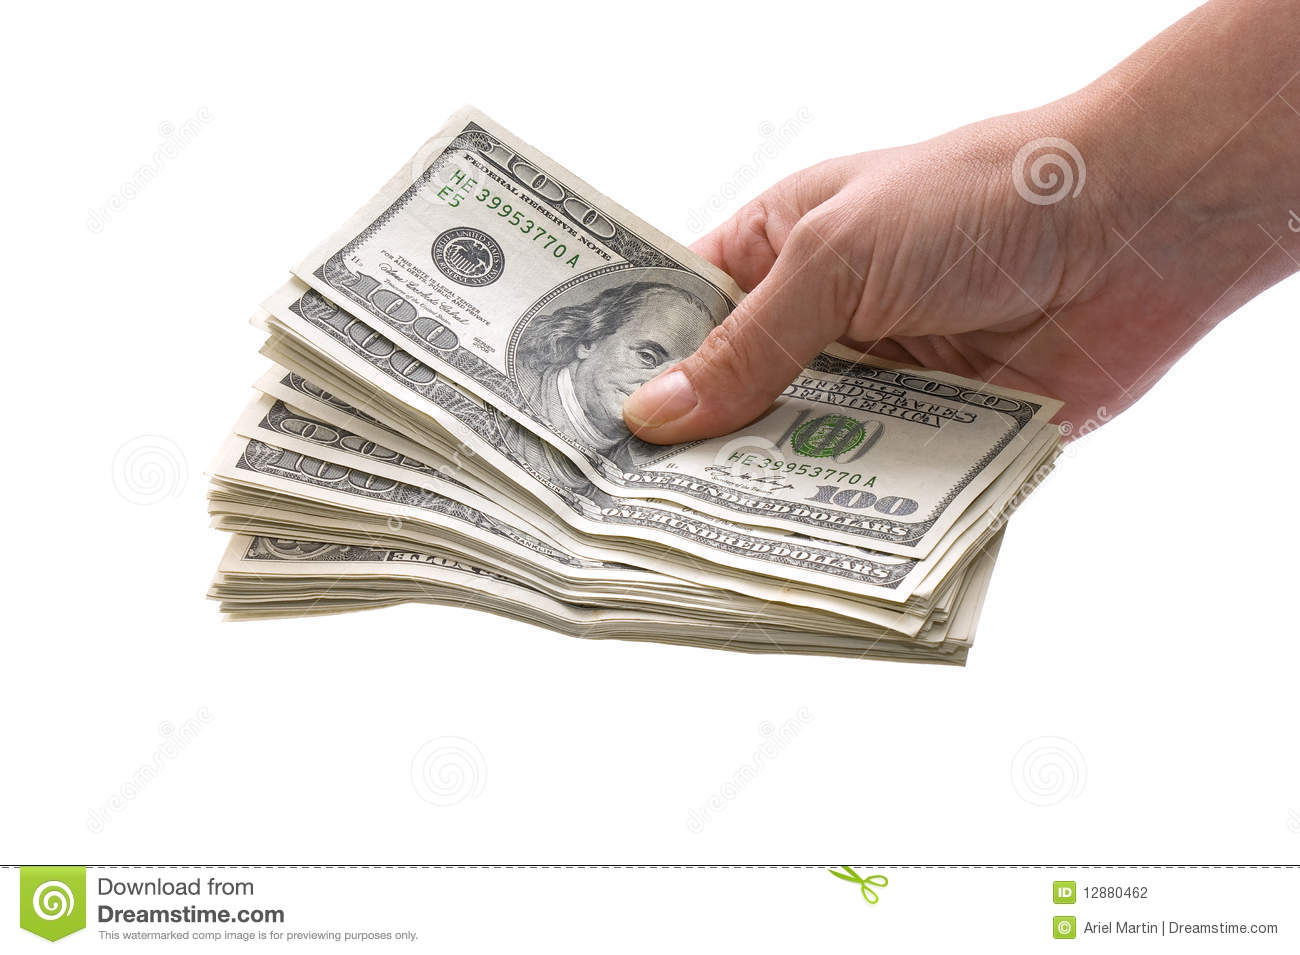 Hand Holding Money Stock Photography - Image: 12880462Holding Money In Hand